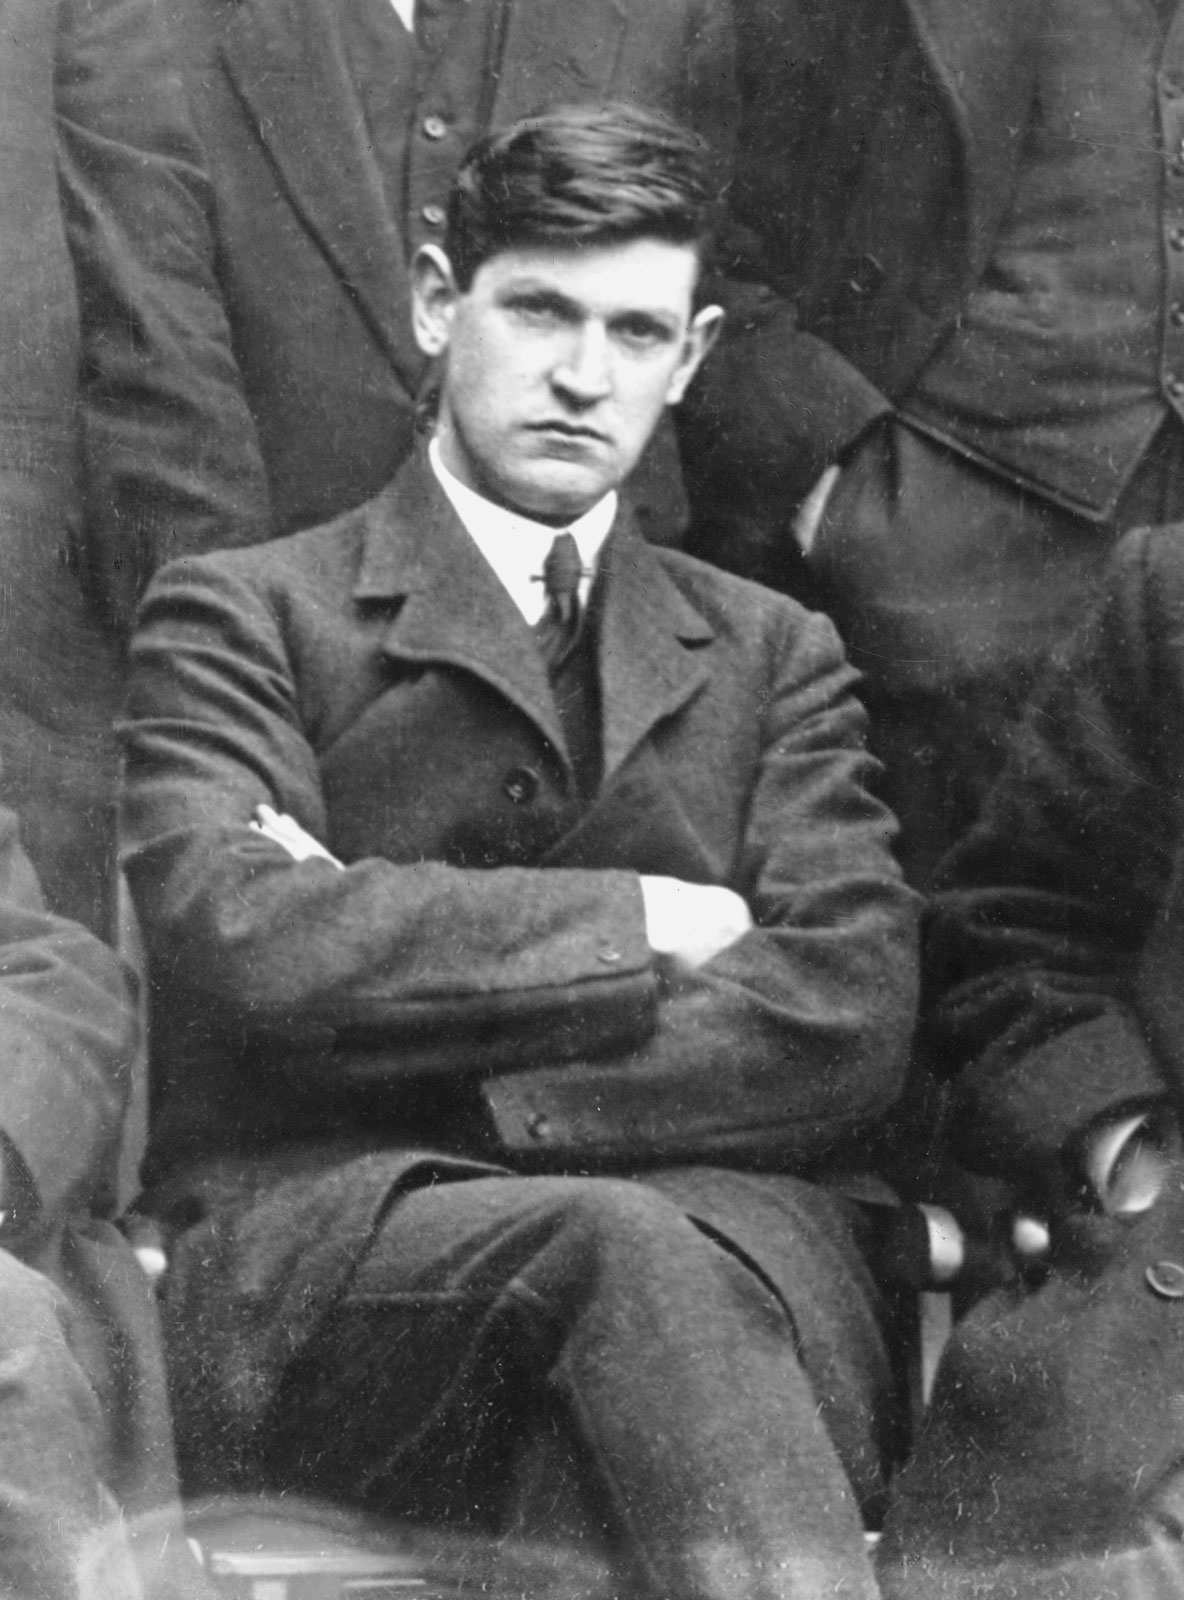 michael collins role in ireland essay Michael collins and bloody sunday all the while performing in the role of shortly after the new british team arrived in ireland, michael collins had received.